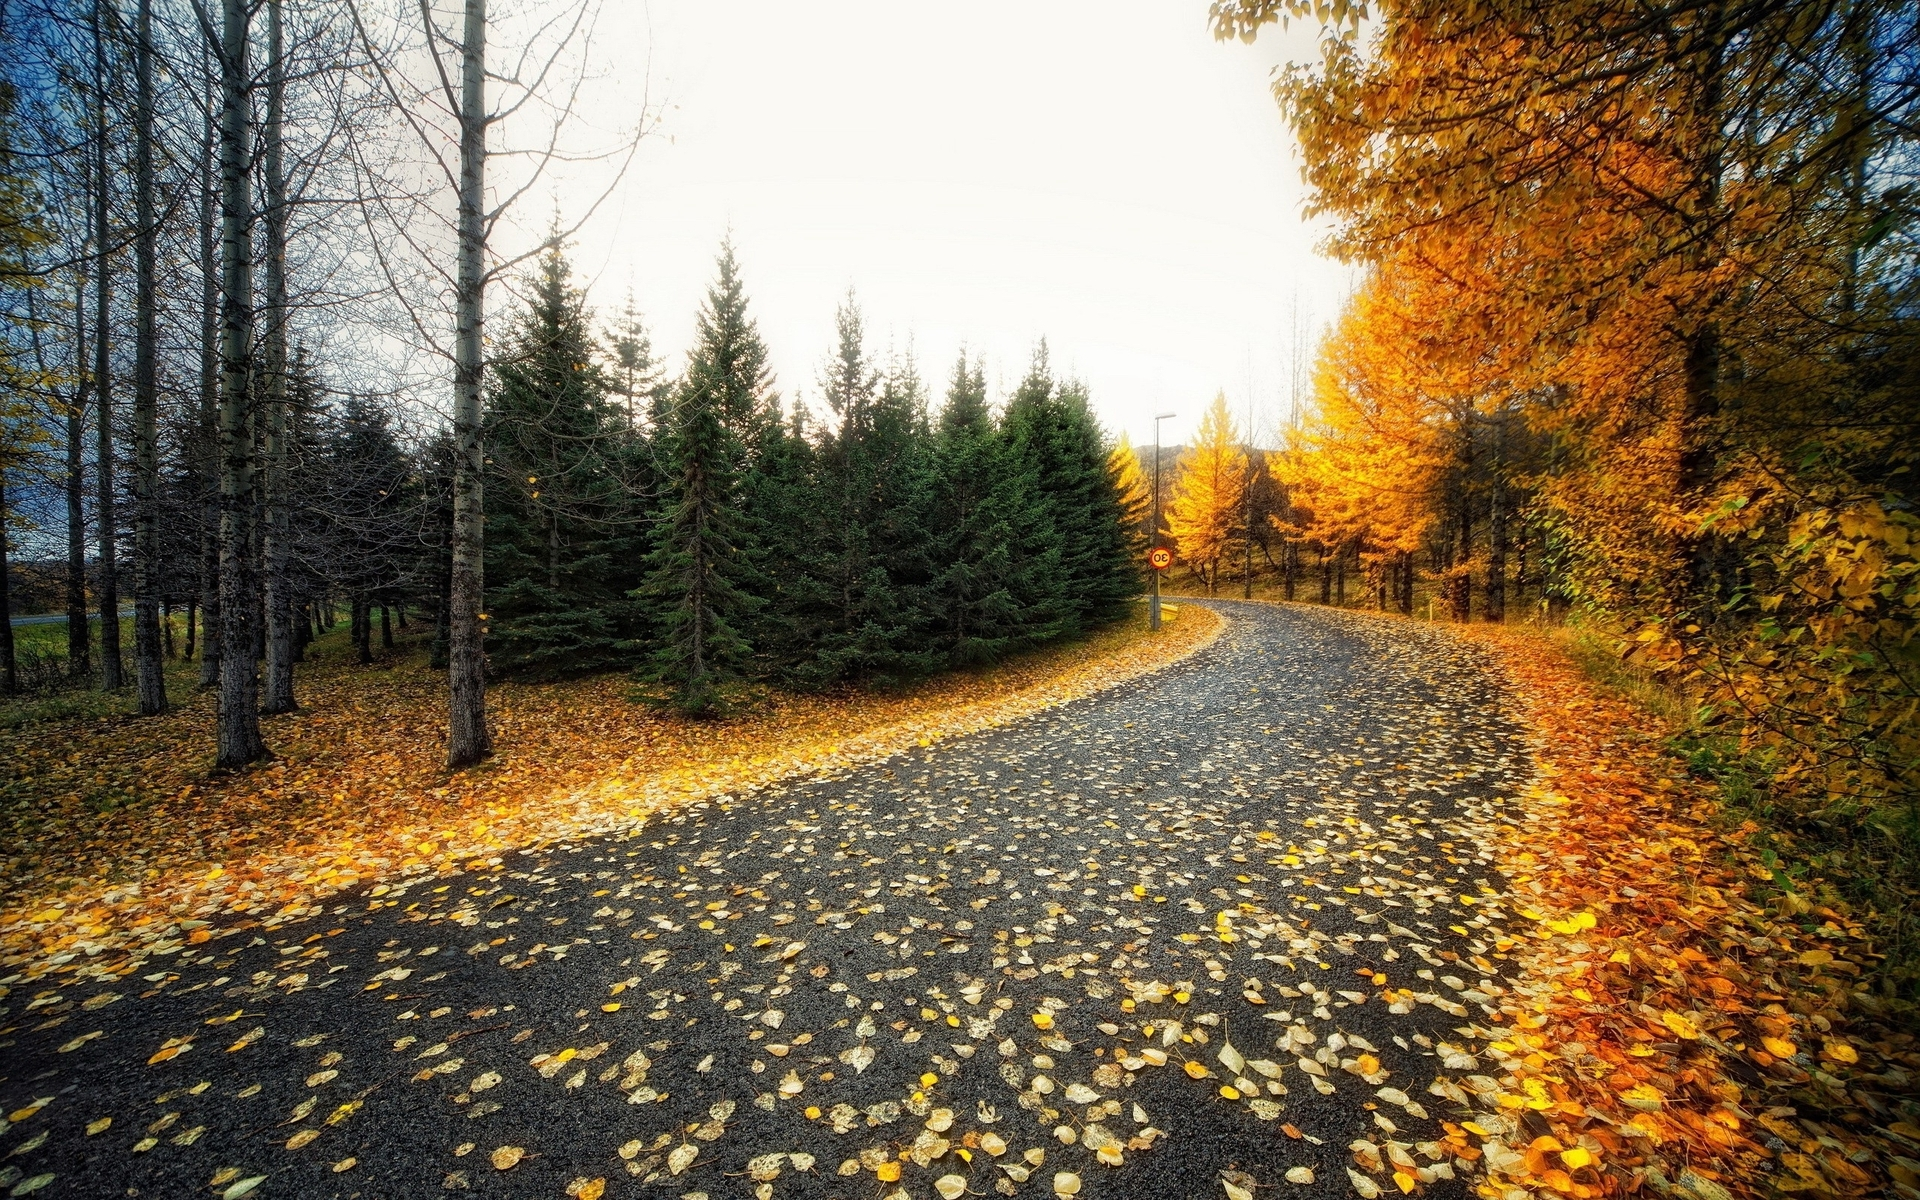 Nice Wallpaper For Iphone 5 Calico Trees Nice Road Foliage Wallpapers Calico Trees